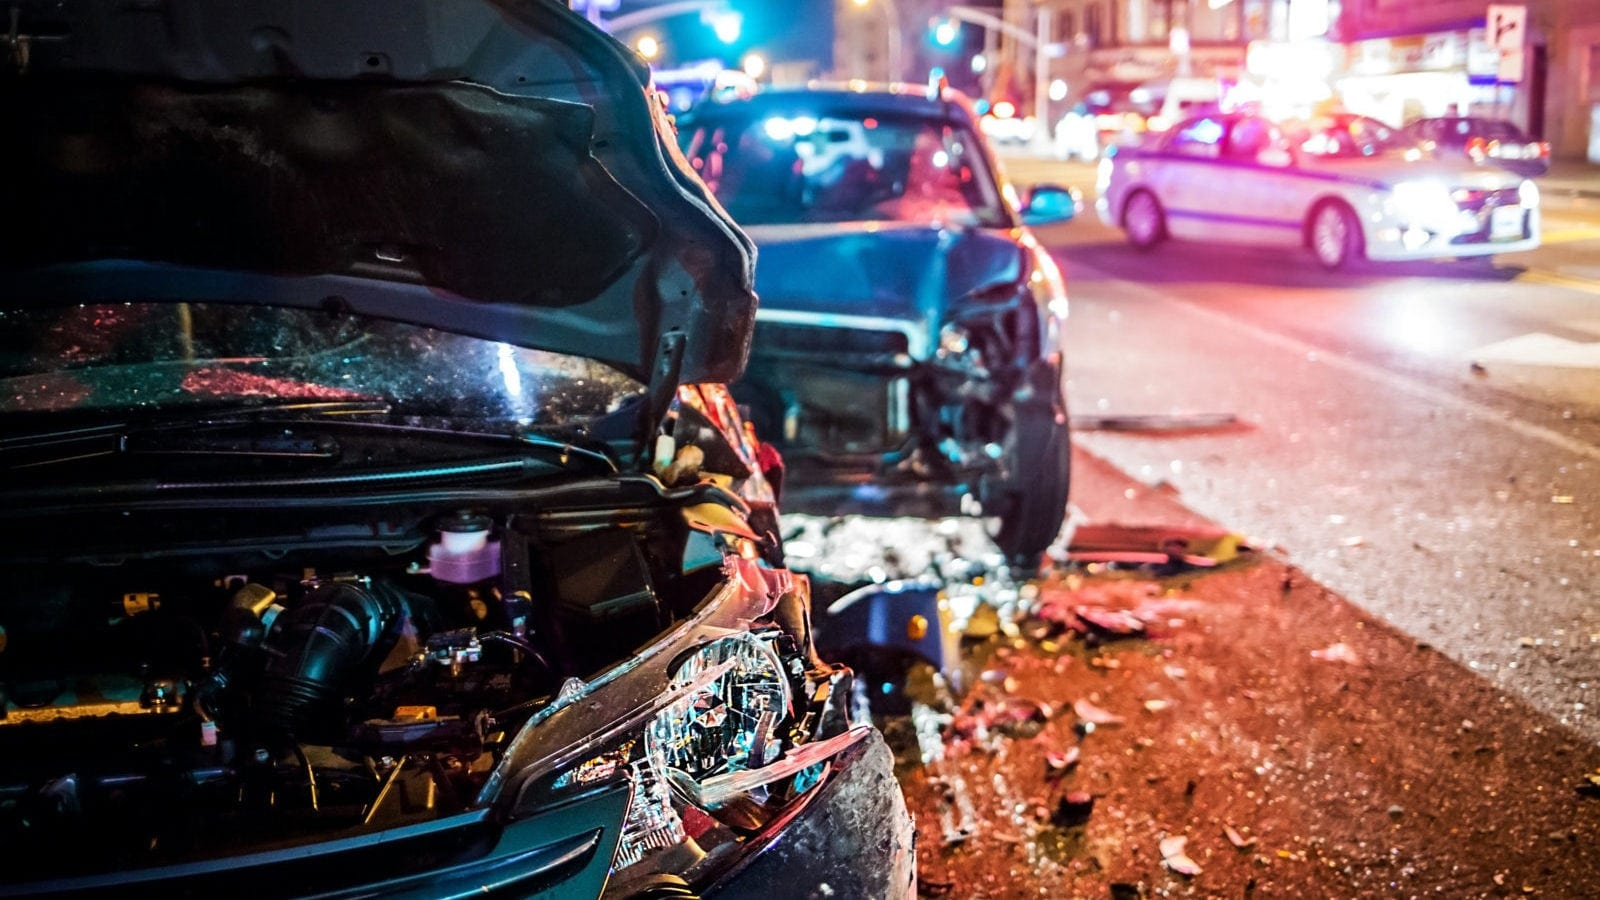 Serious Car Accident At Night Stock Photo